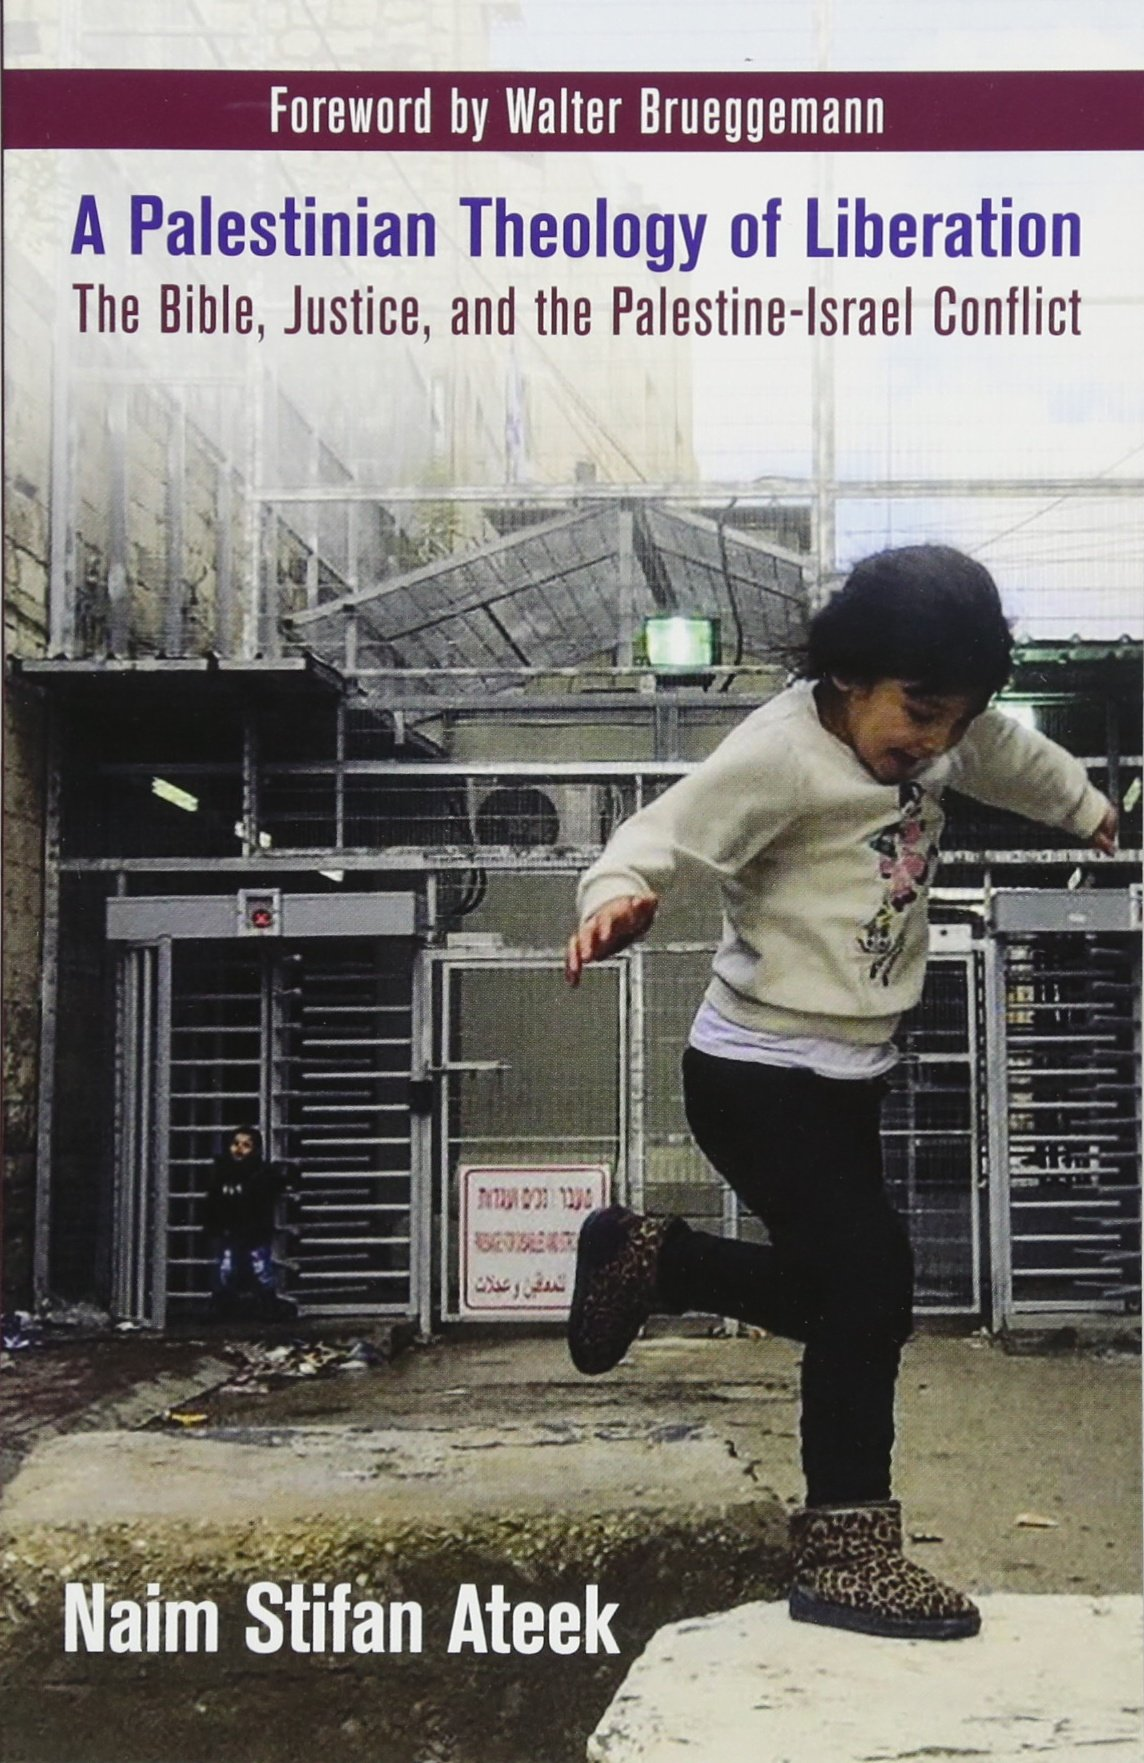 A Palestinian Theology of Liberation: The Bible, Justice